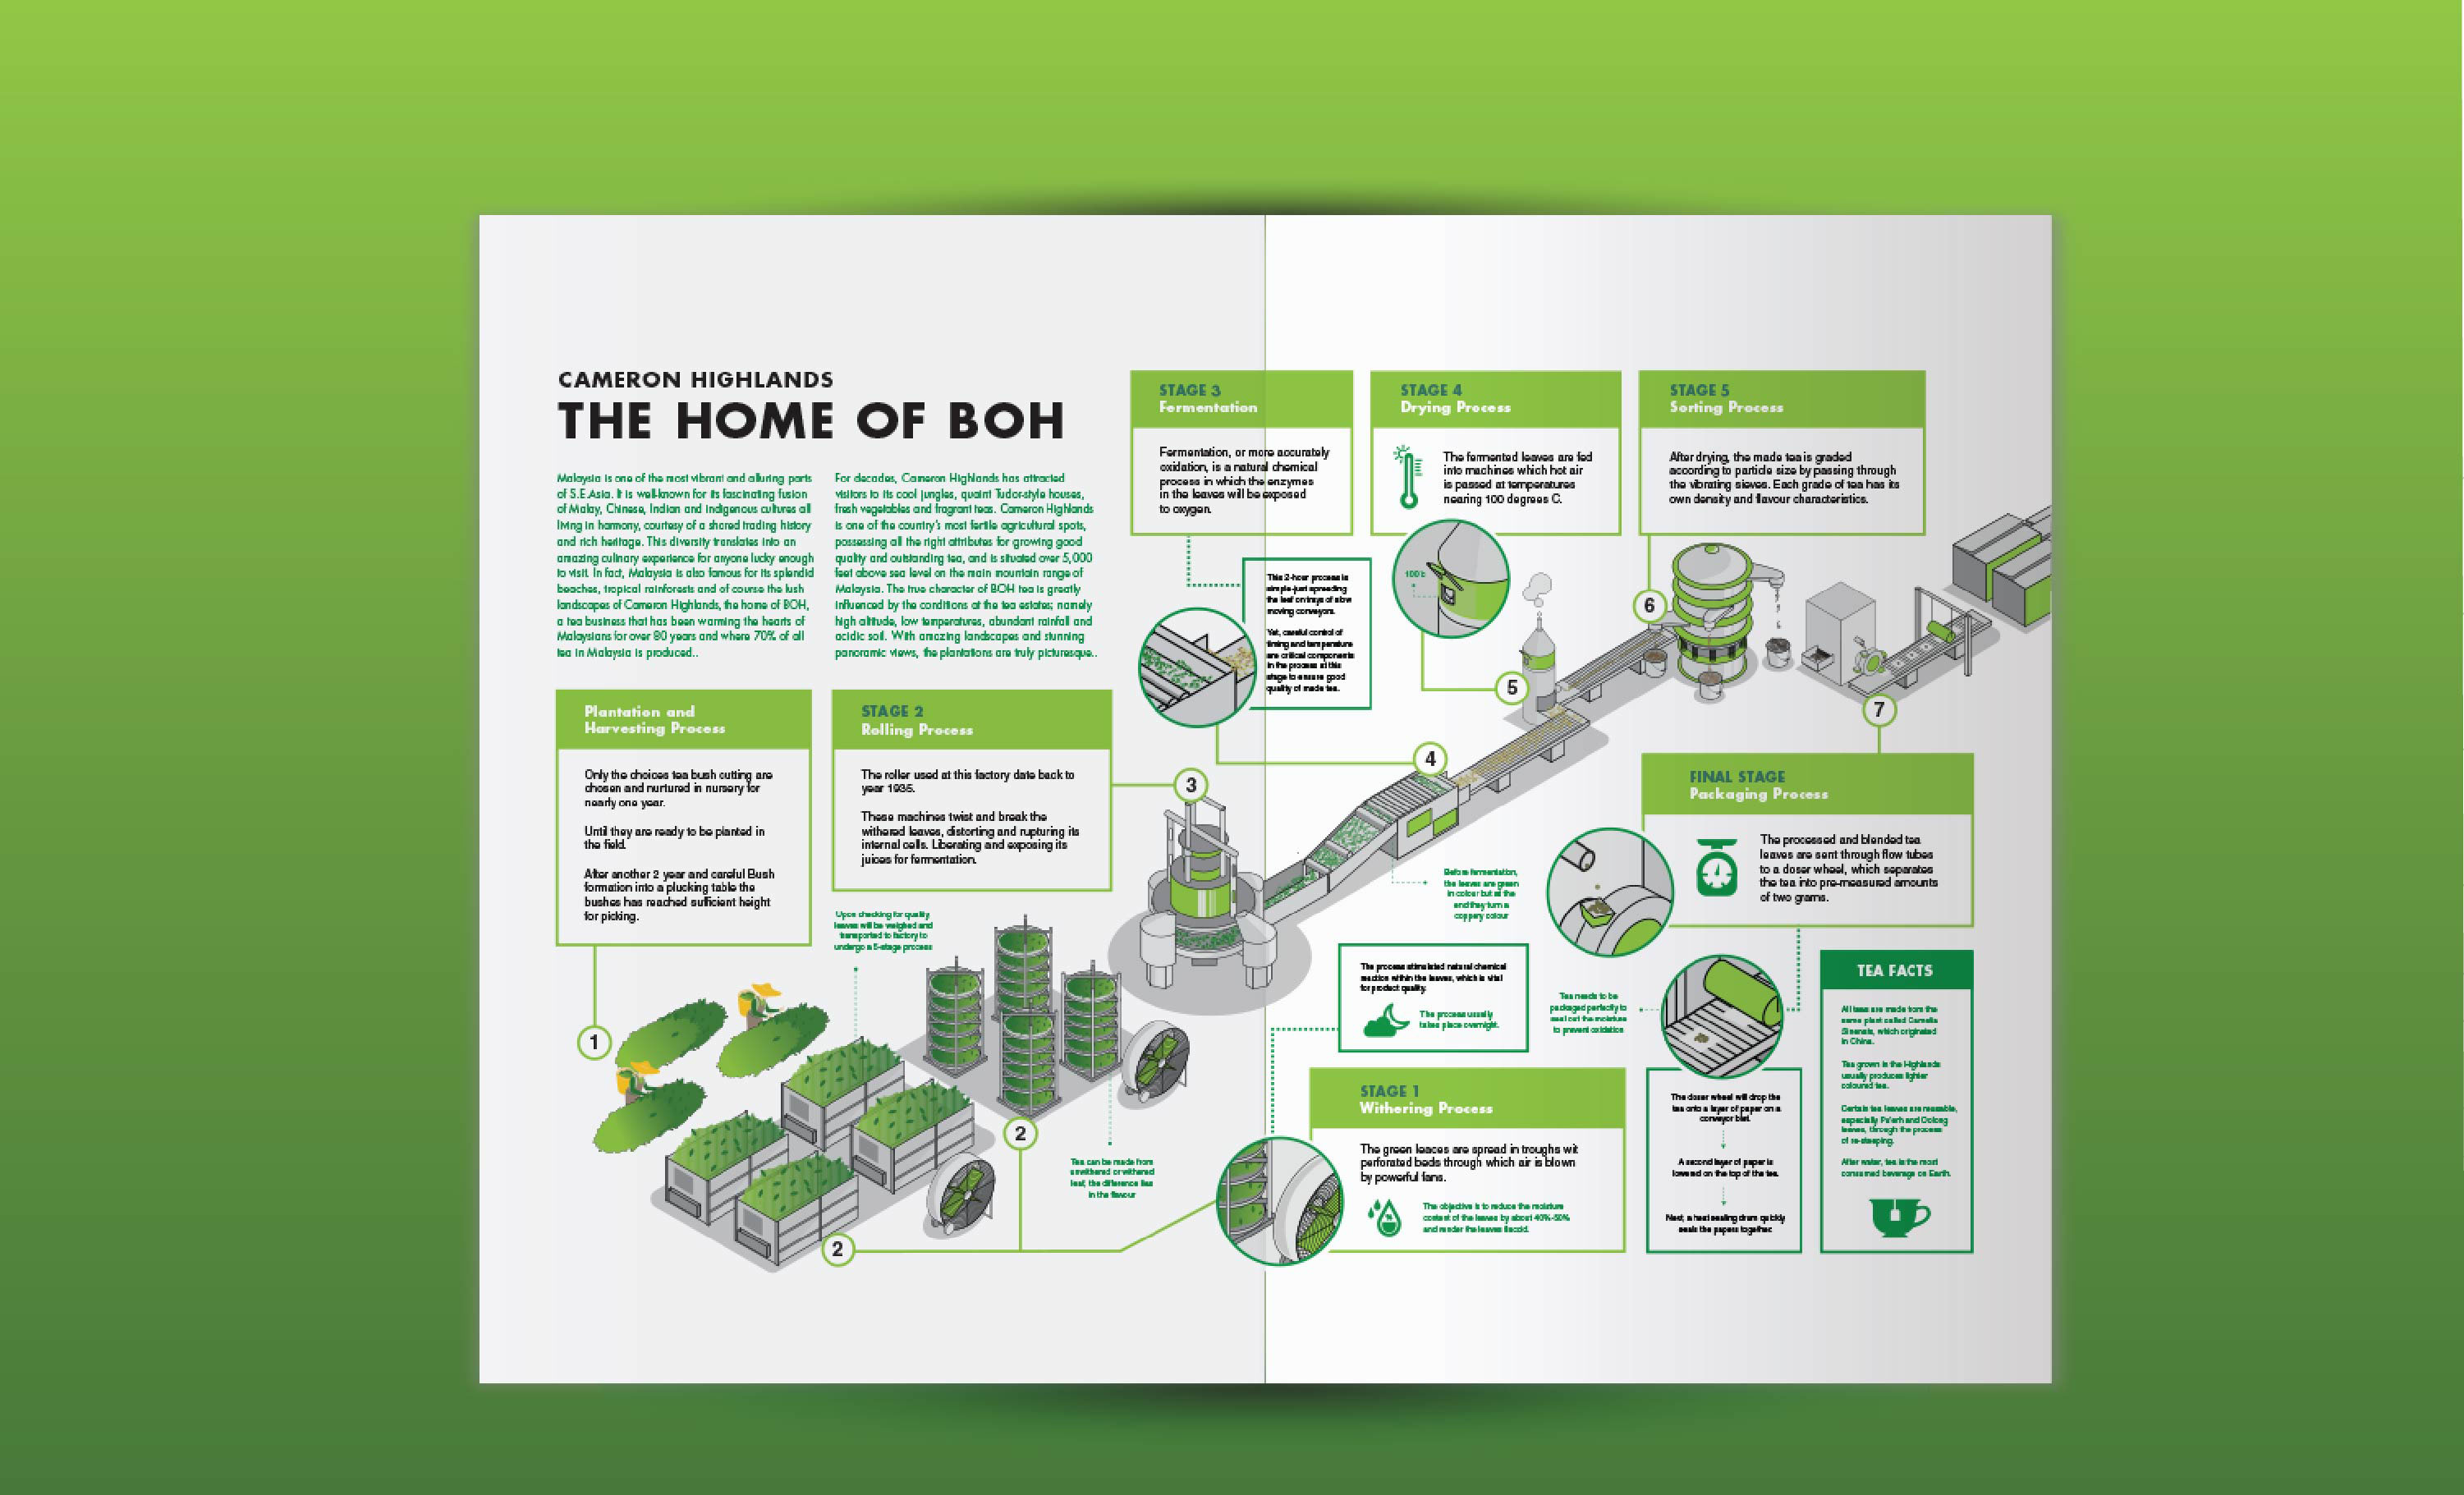 Boh tea Cameron highland infographic illustration